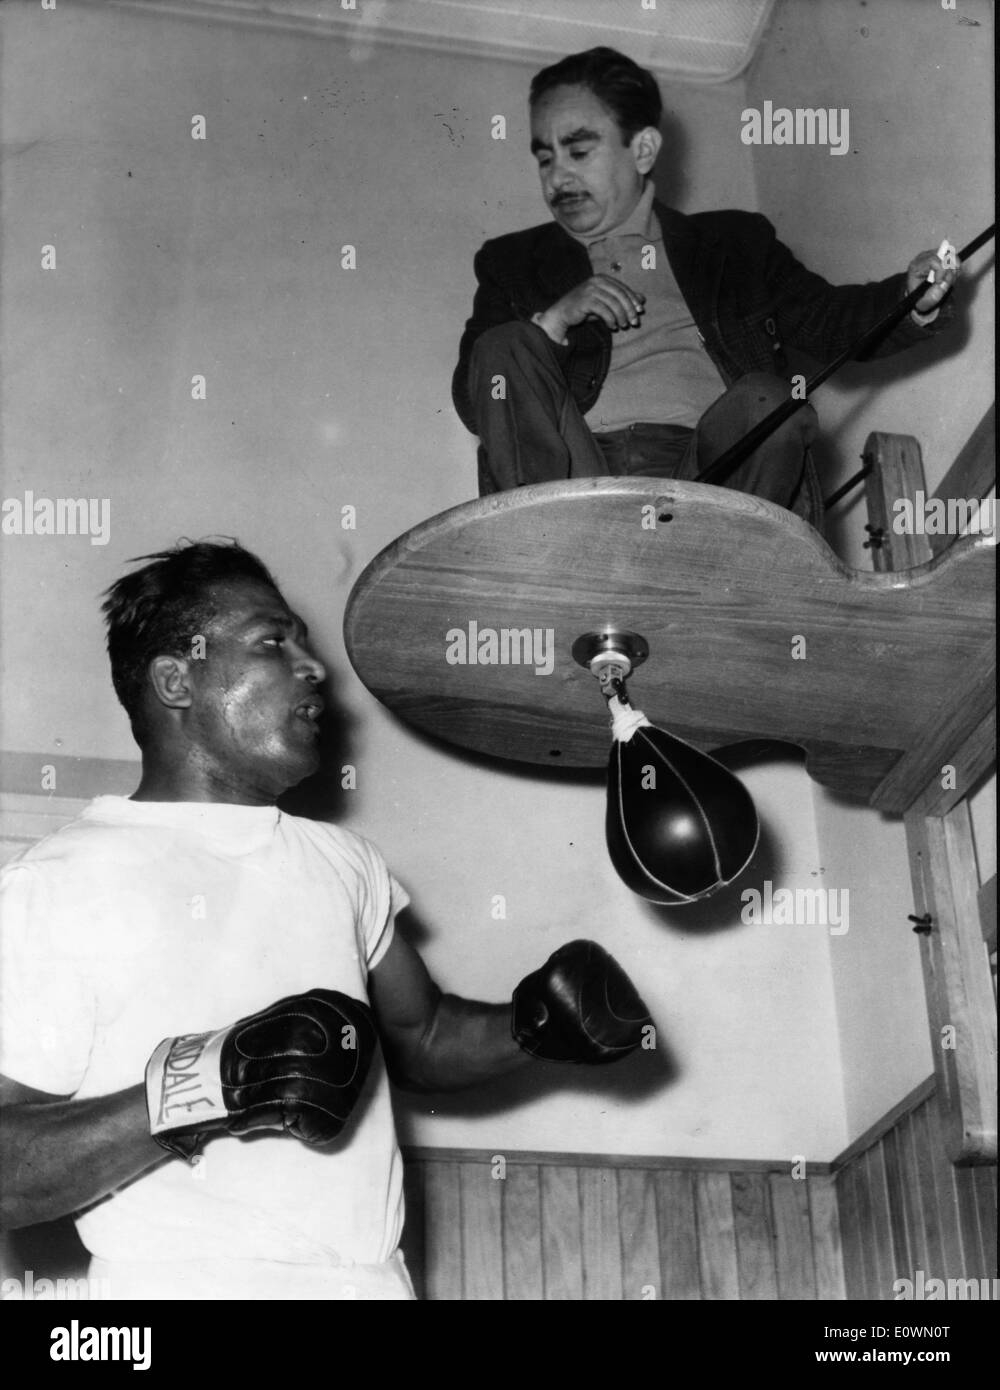 Boxer 'Sugar' Ray Robinson training for a match - Stock Image